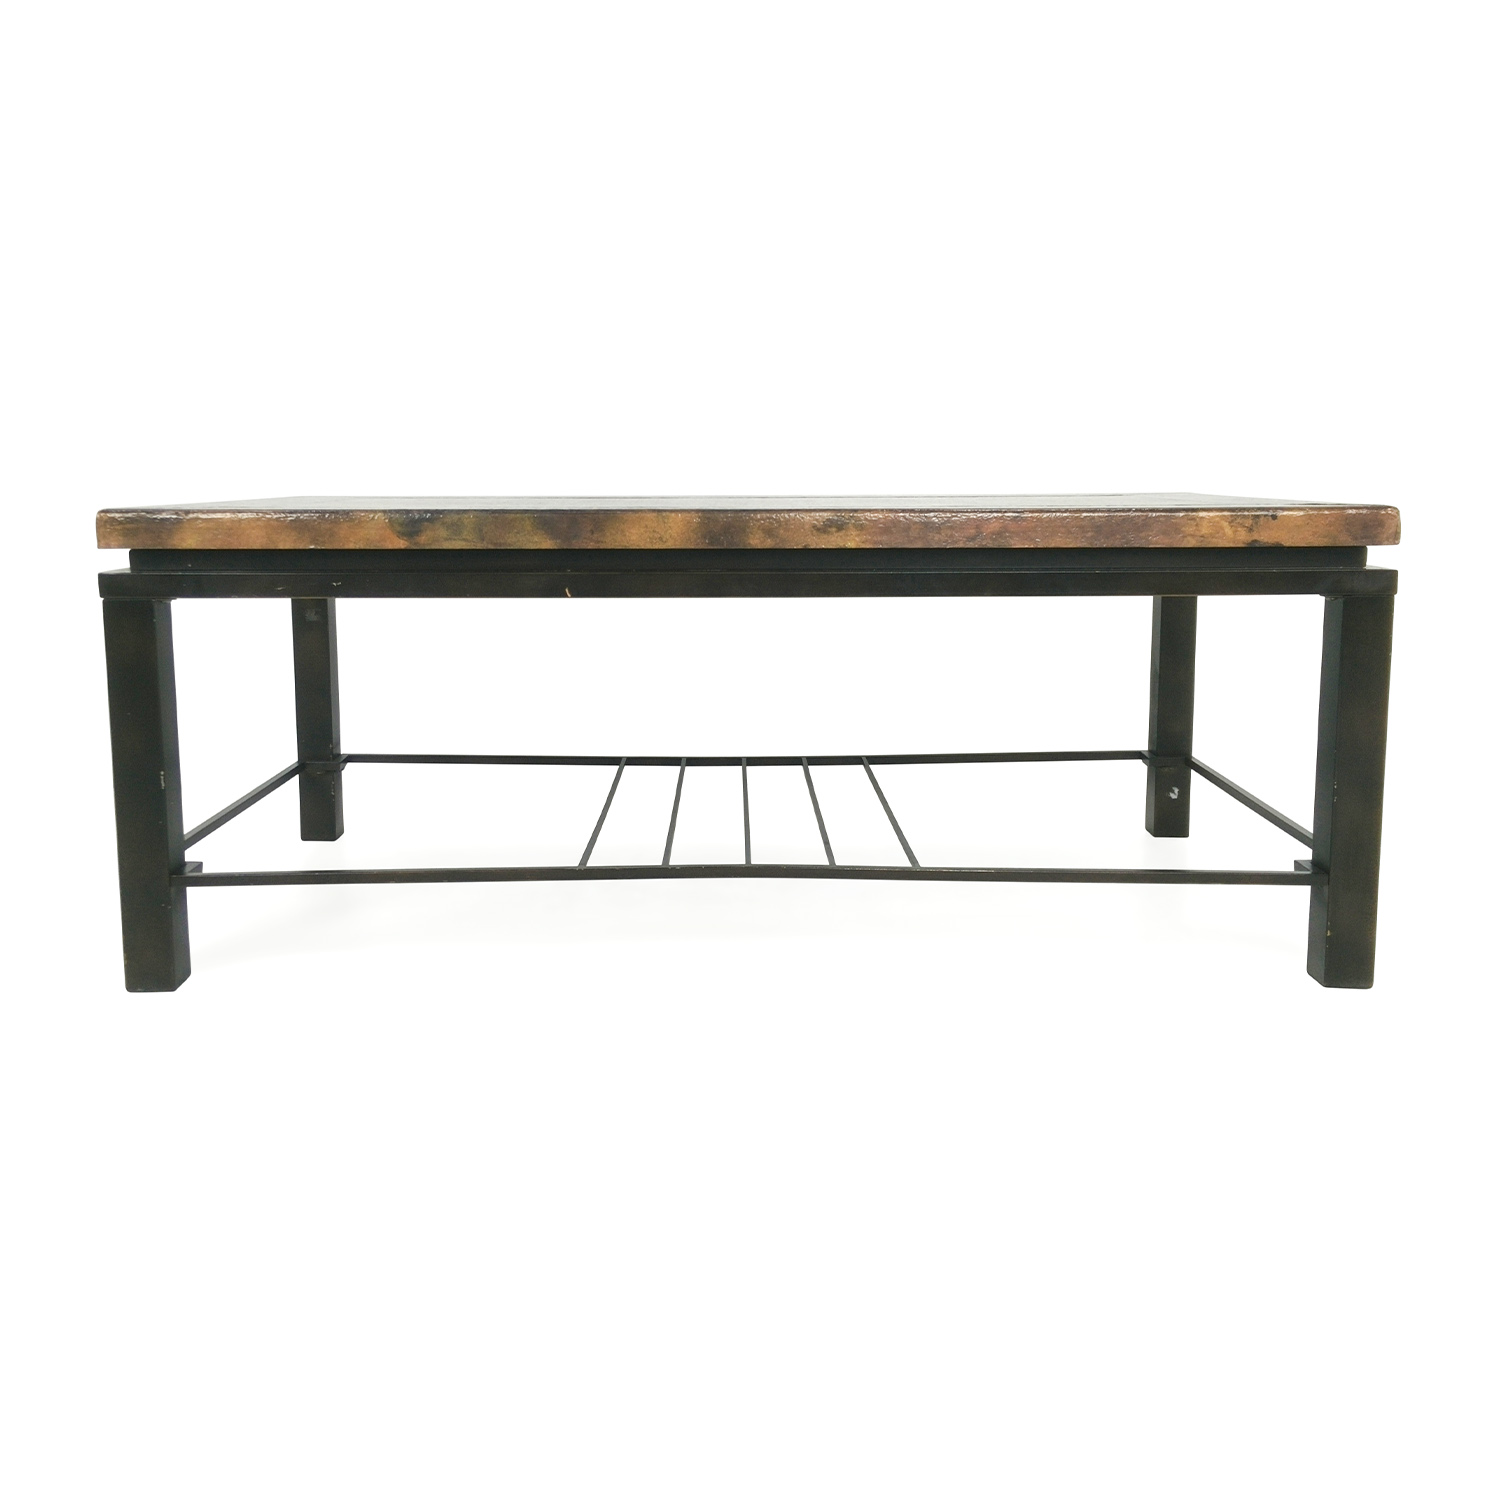 Unknown Brand Bronze Coffee Table for sale